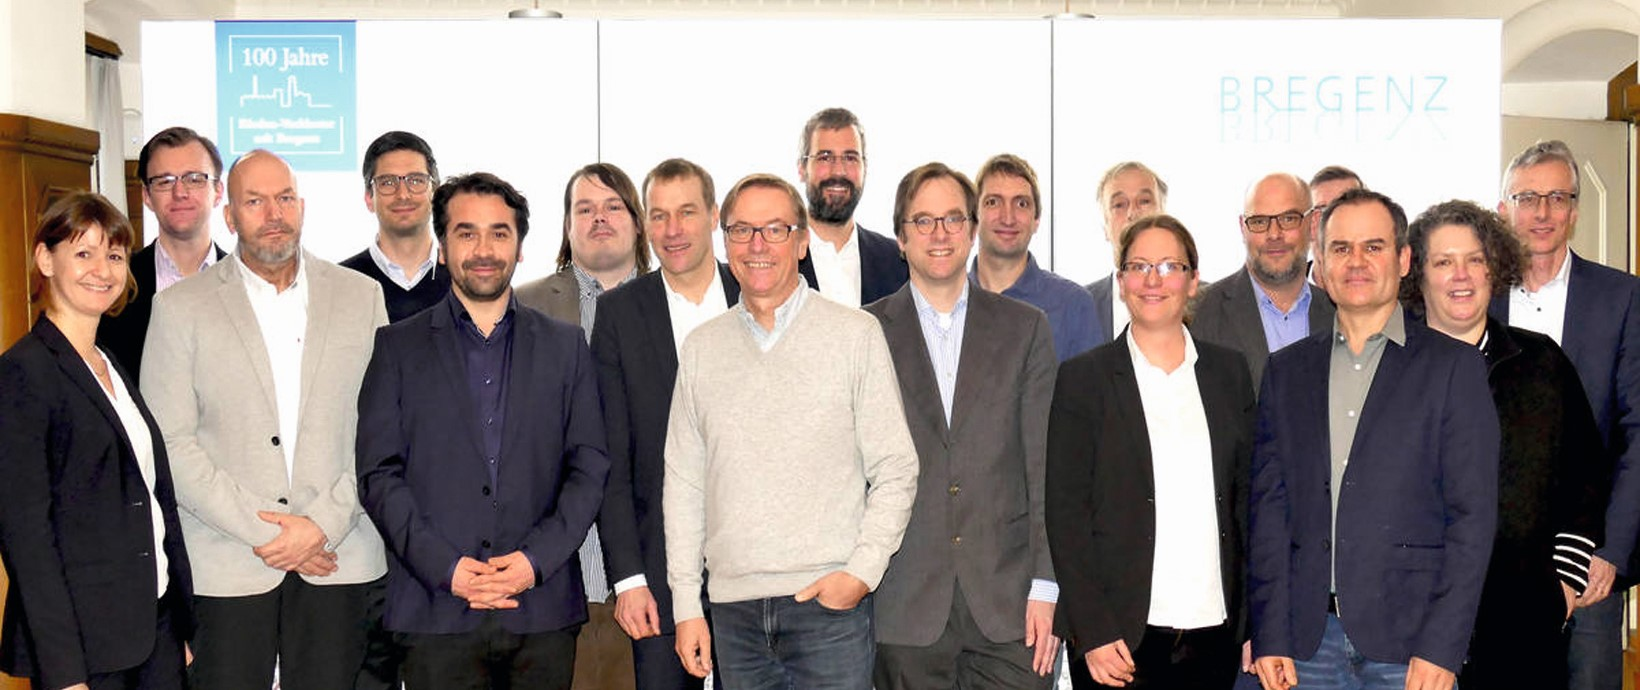 Gruppenbild der Projektpartner der Smart Government Akademie